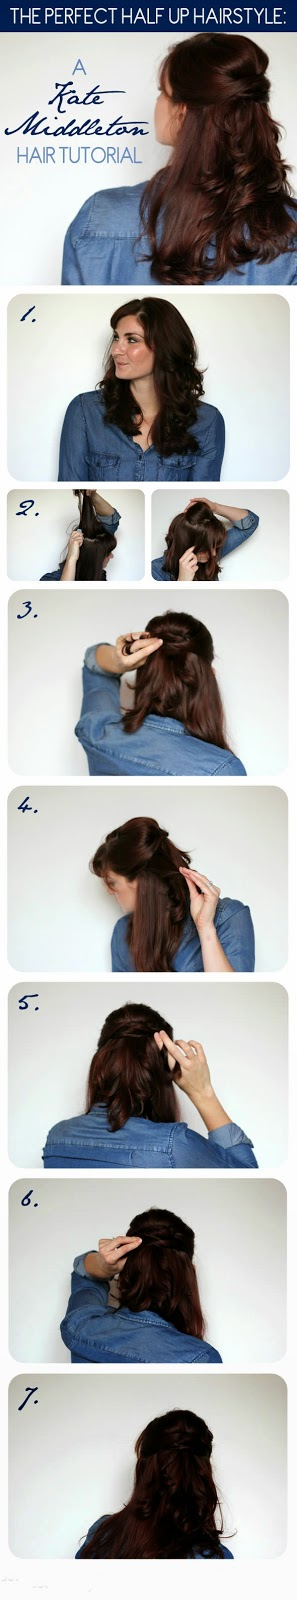 A Kate Middleton Hair Tutorial